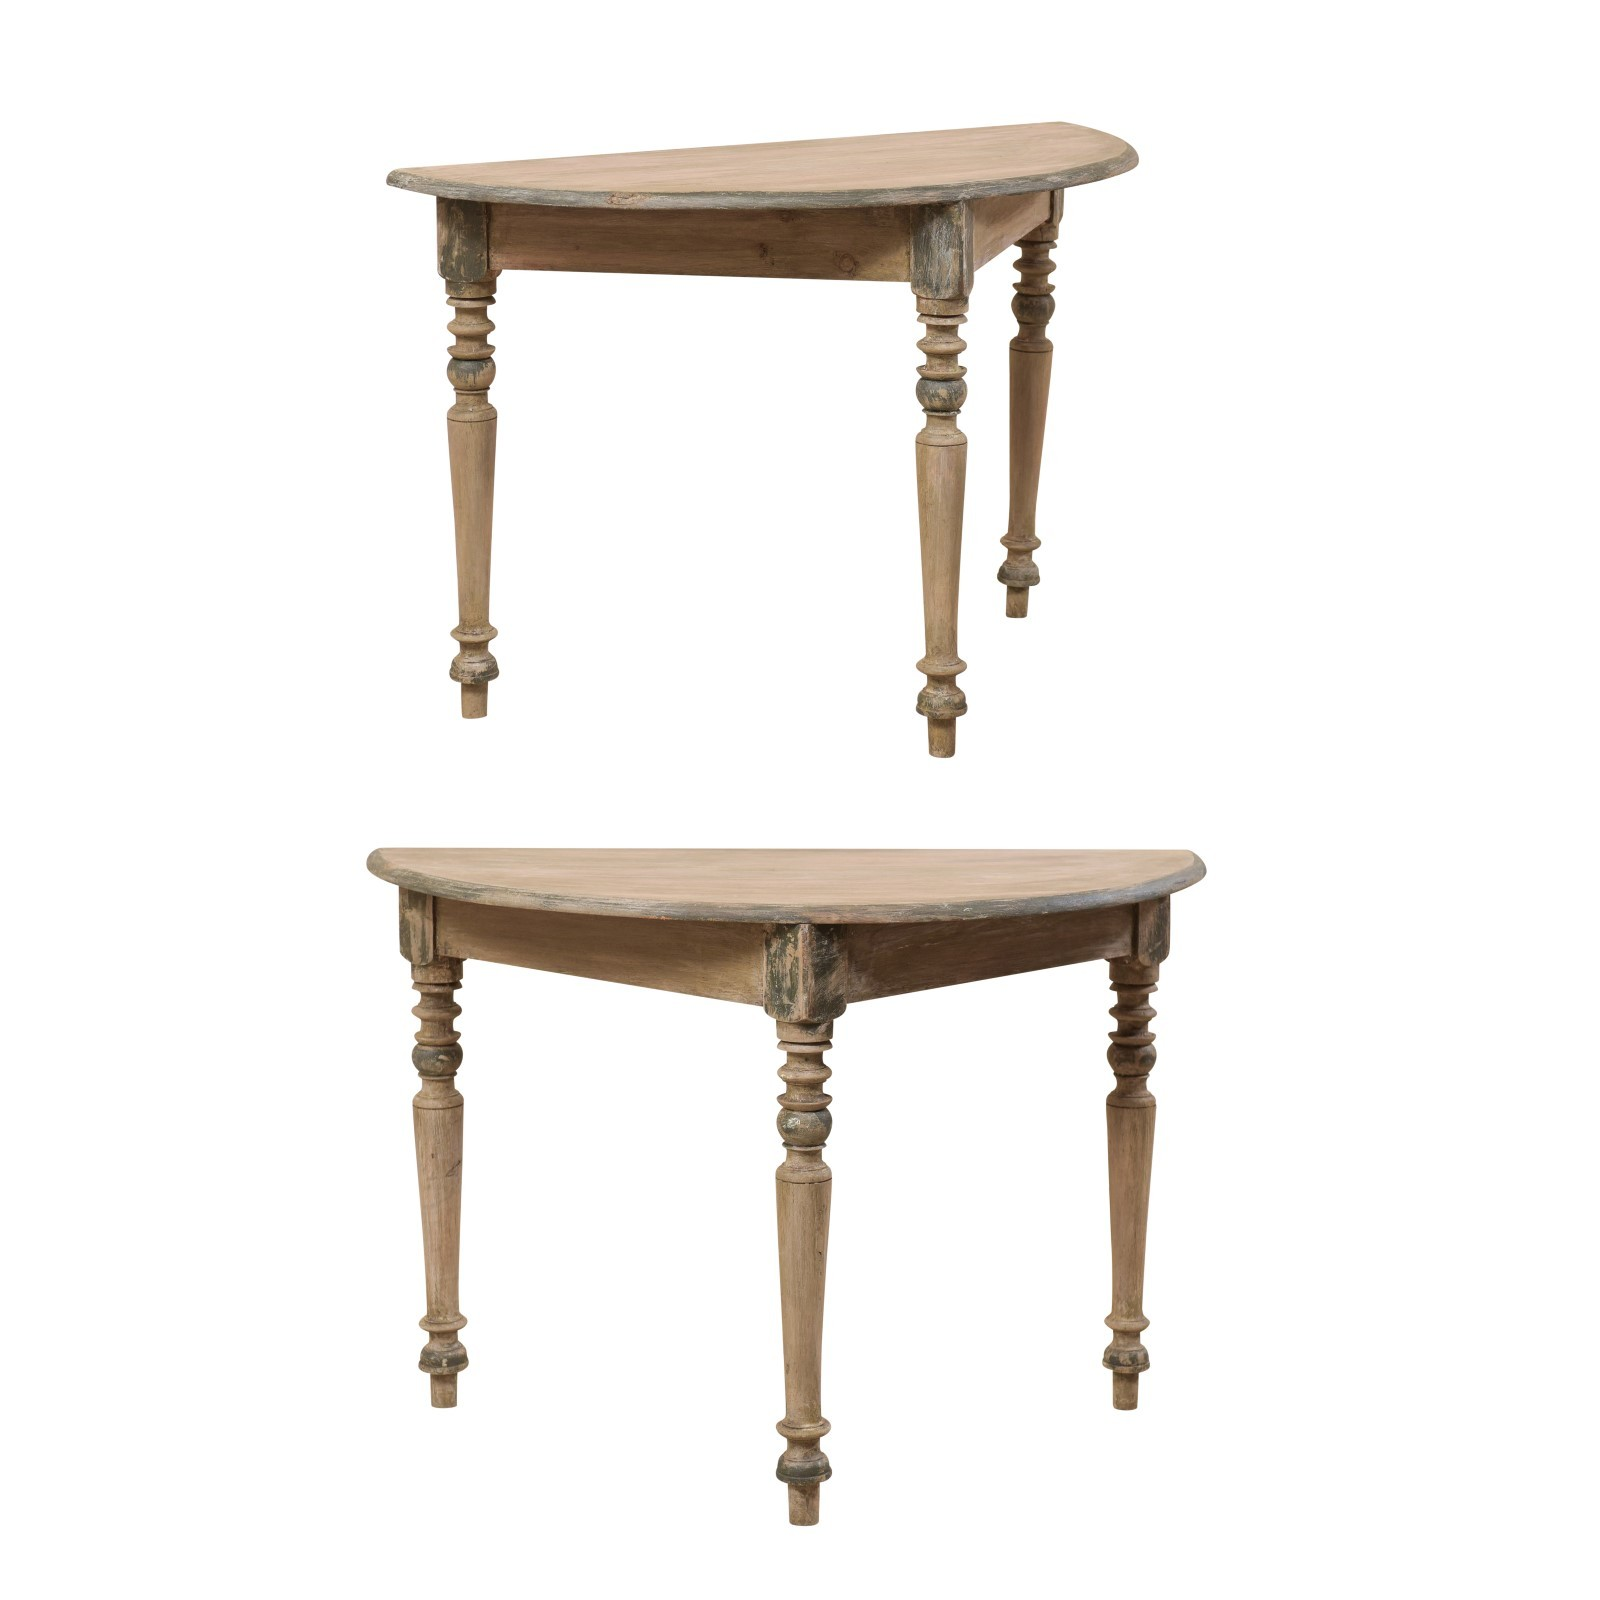 Swedish Demi-Lune Tables w/Turned Legs